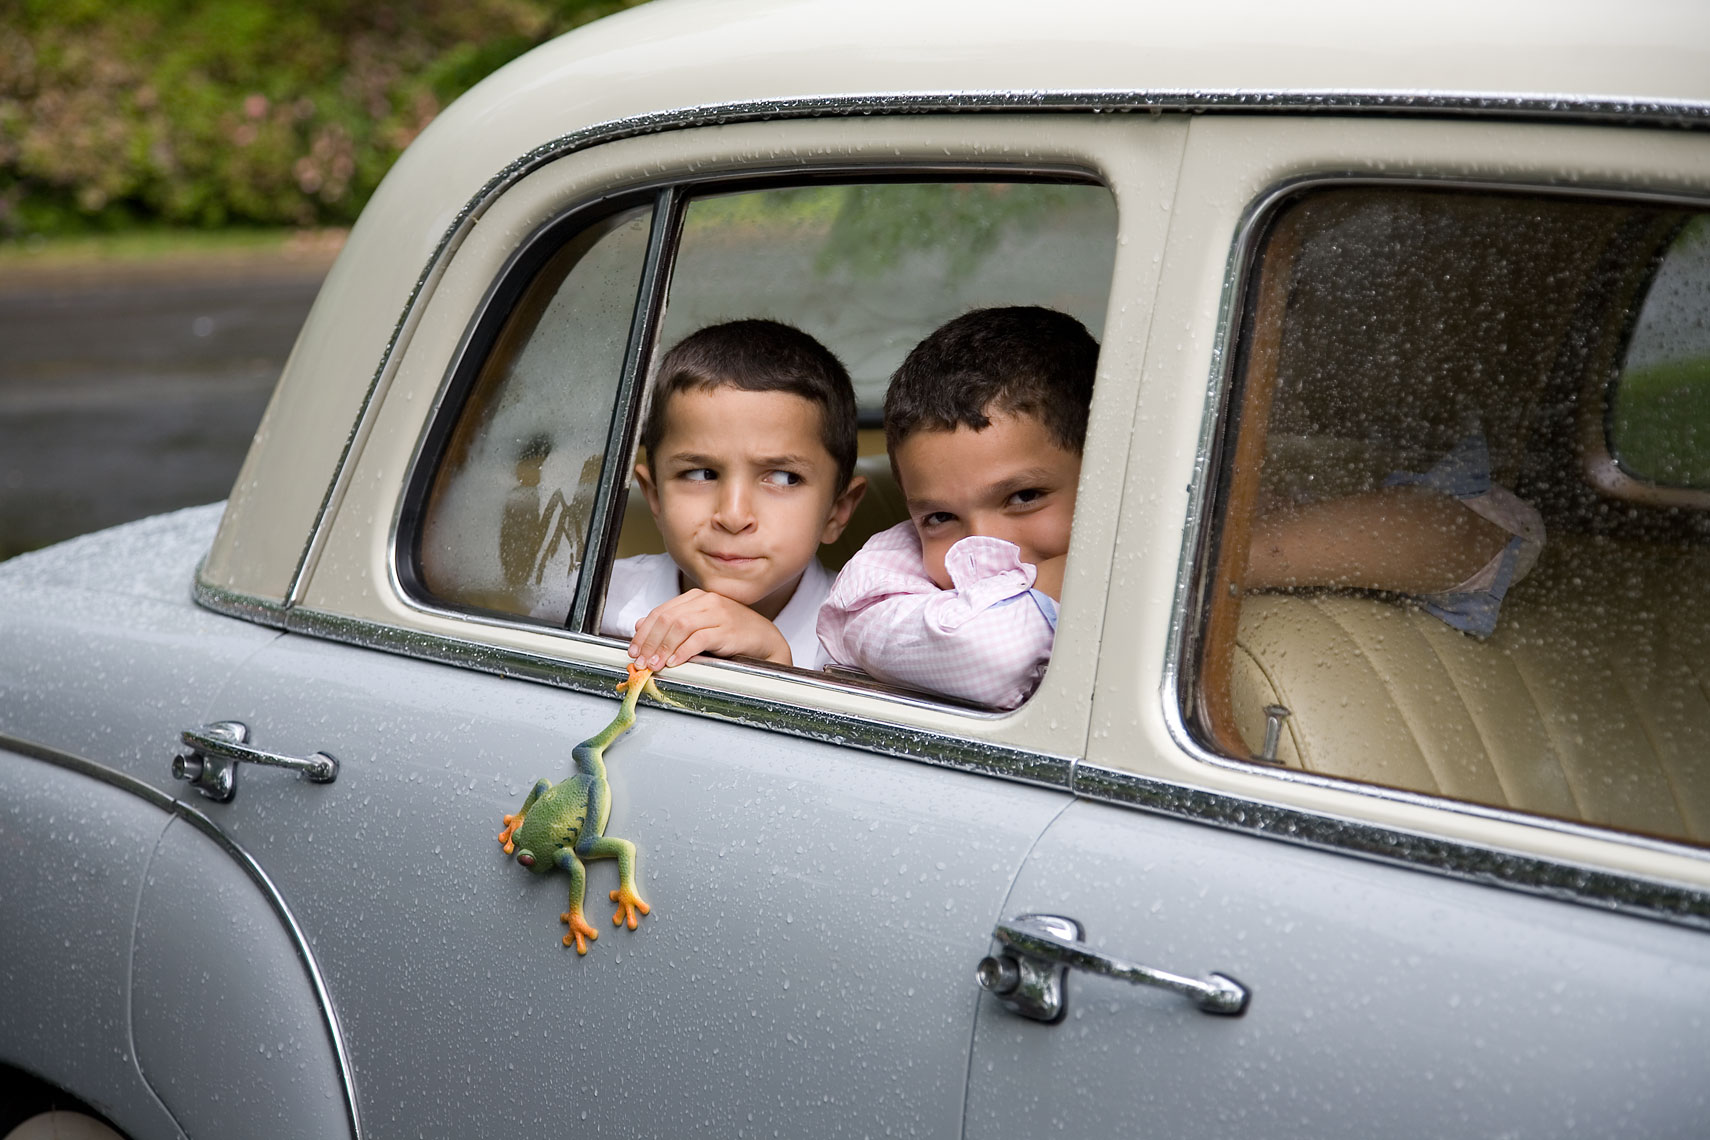 Boys_in_car_frog_7882